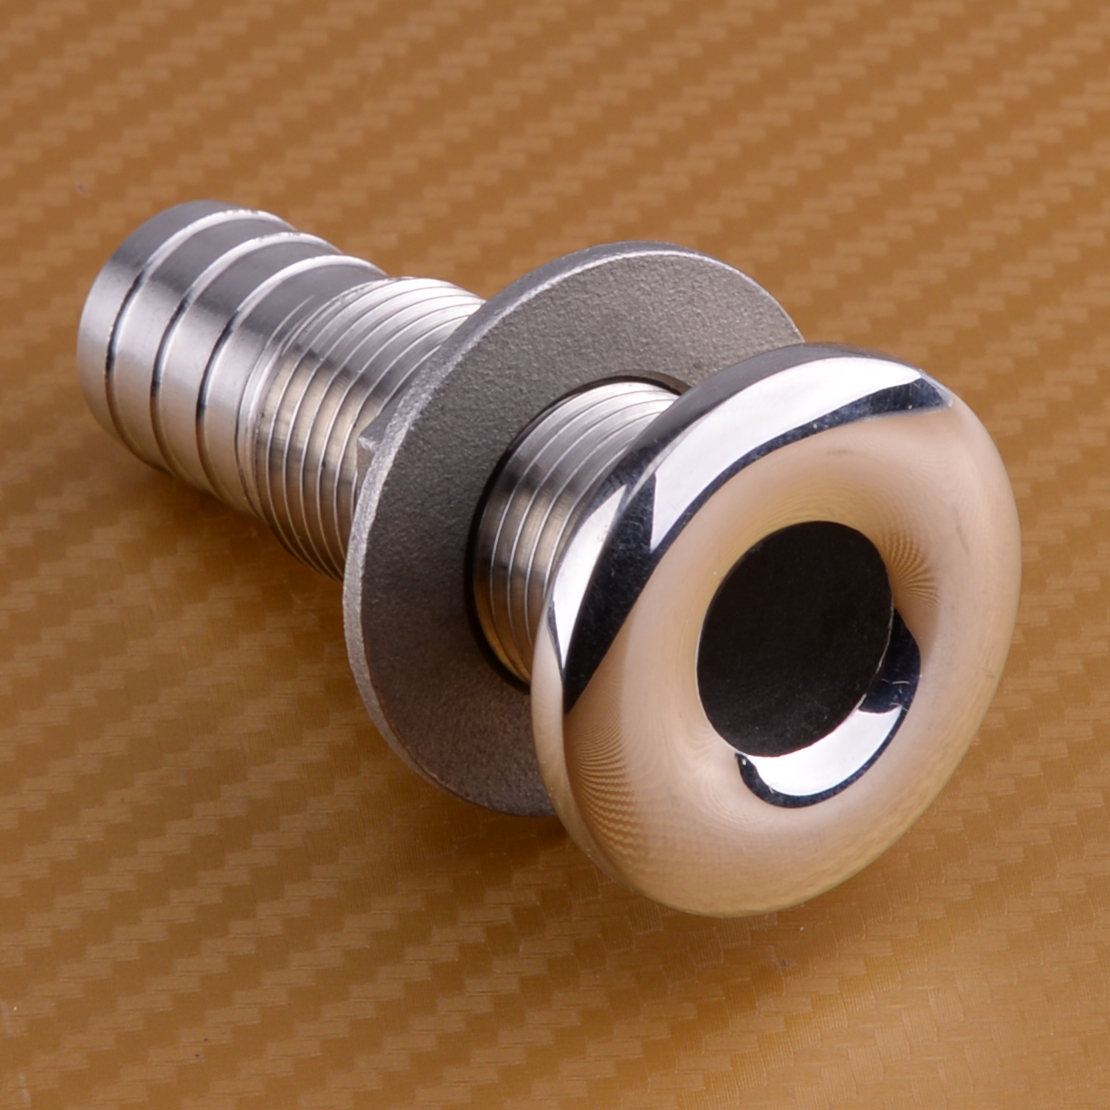 1 Inch Durable Hose Stainless Steel Thru Hull Fitting Fits for Boat Marine